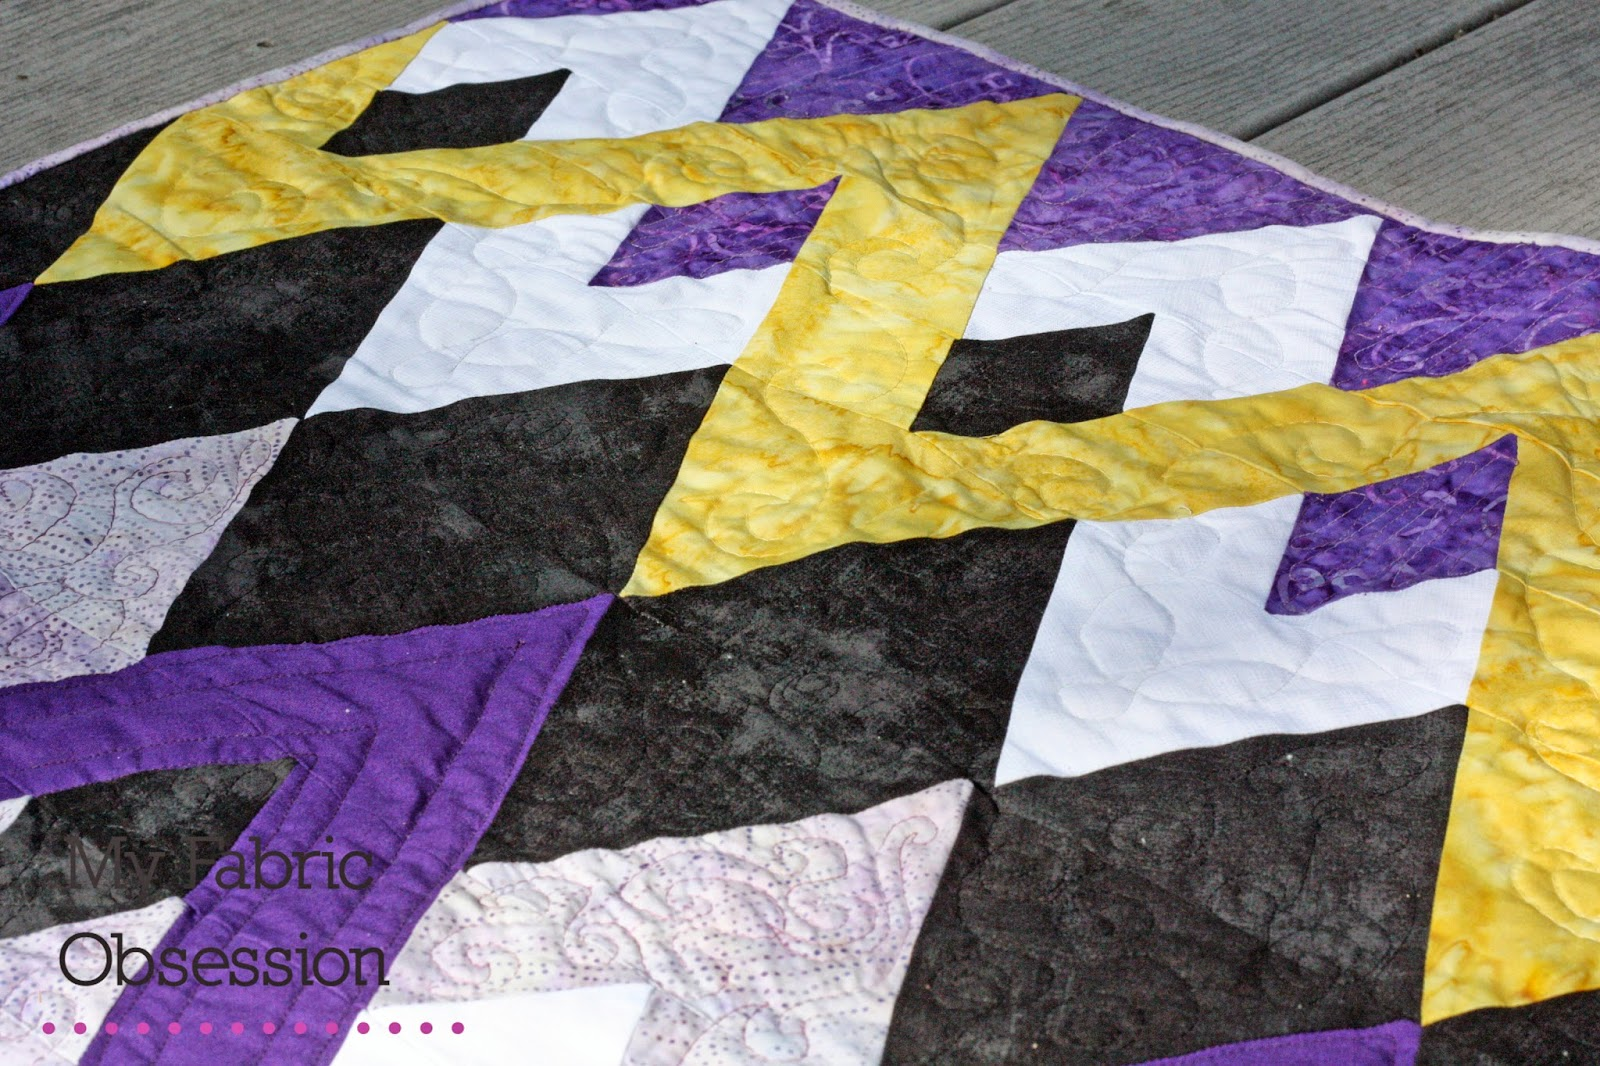 My Fabric Obsession: The Zig Zag Quilt